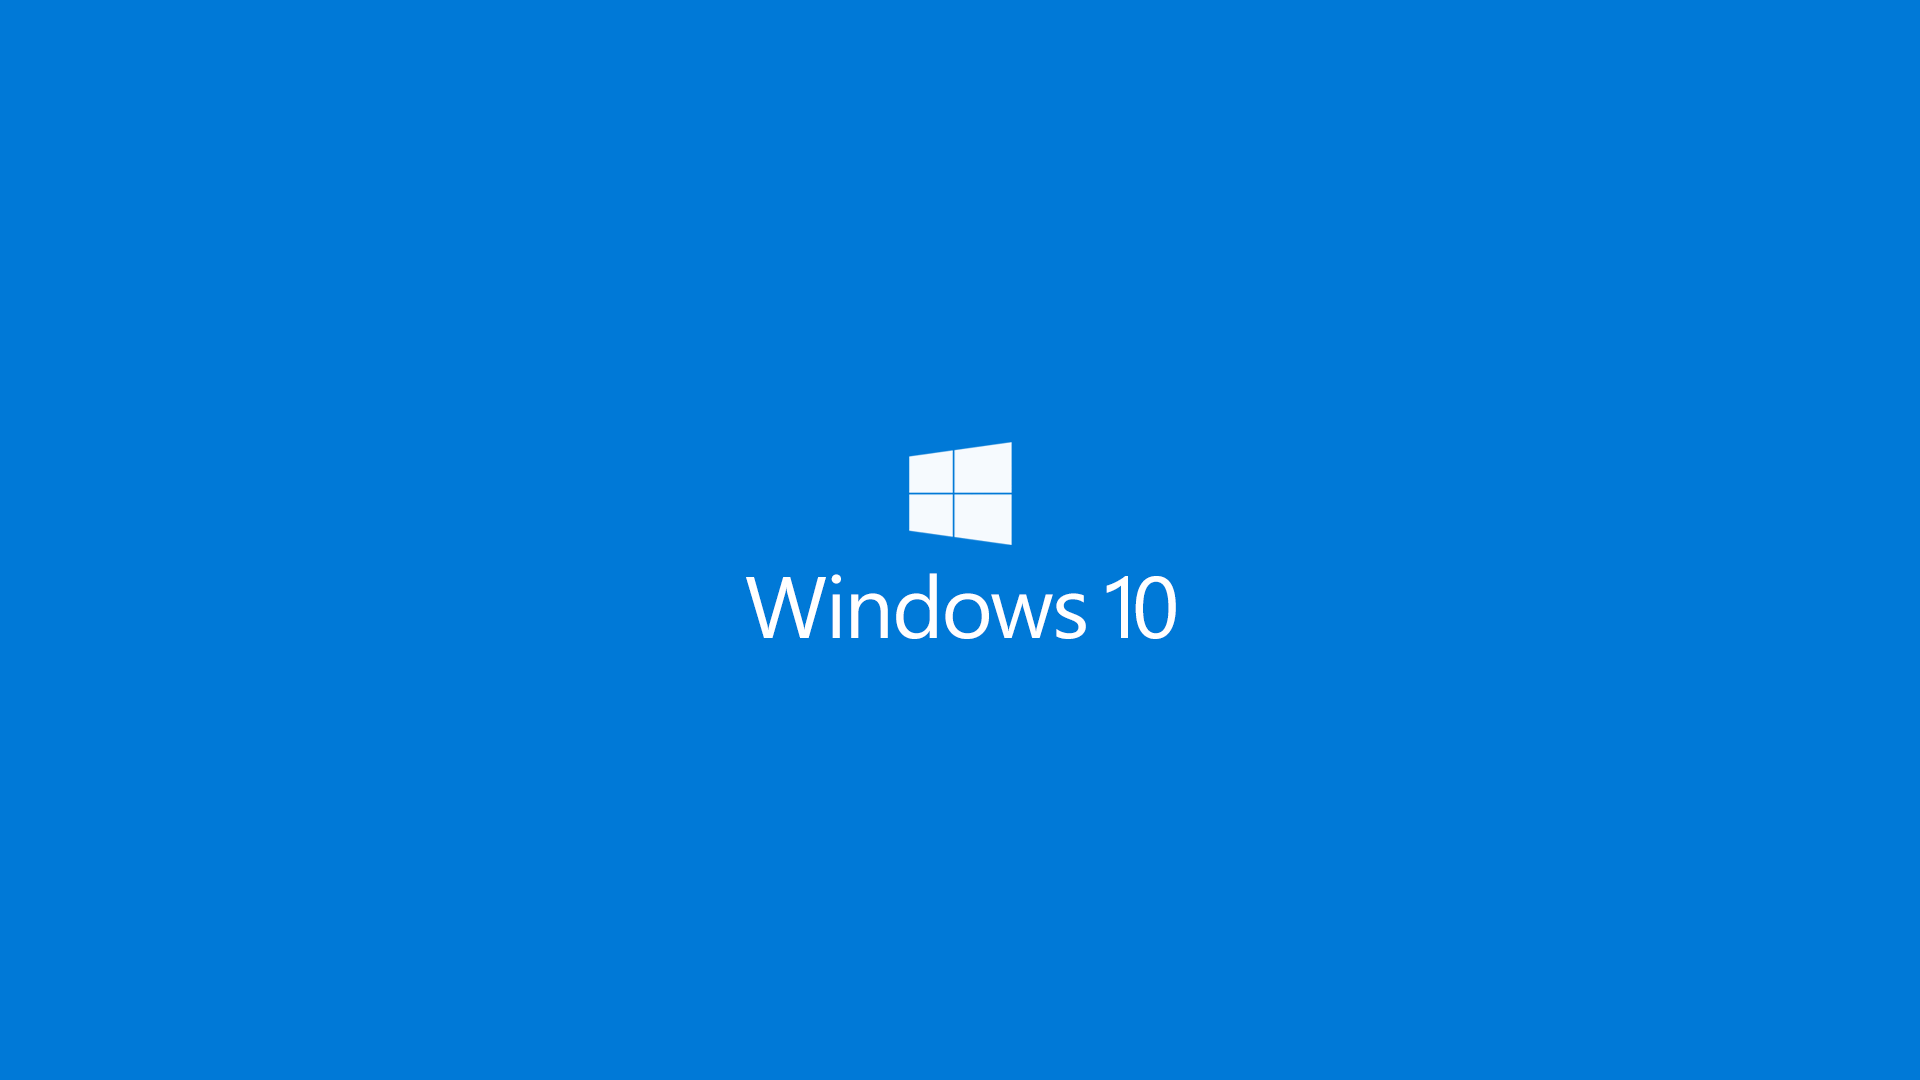 windows-10-blue-background-desktop-background